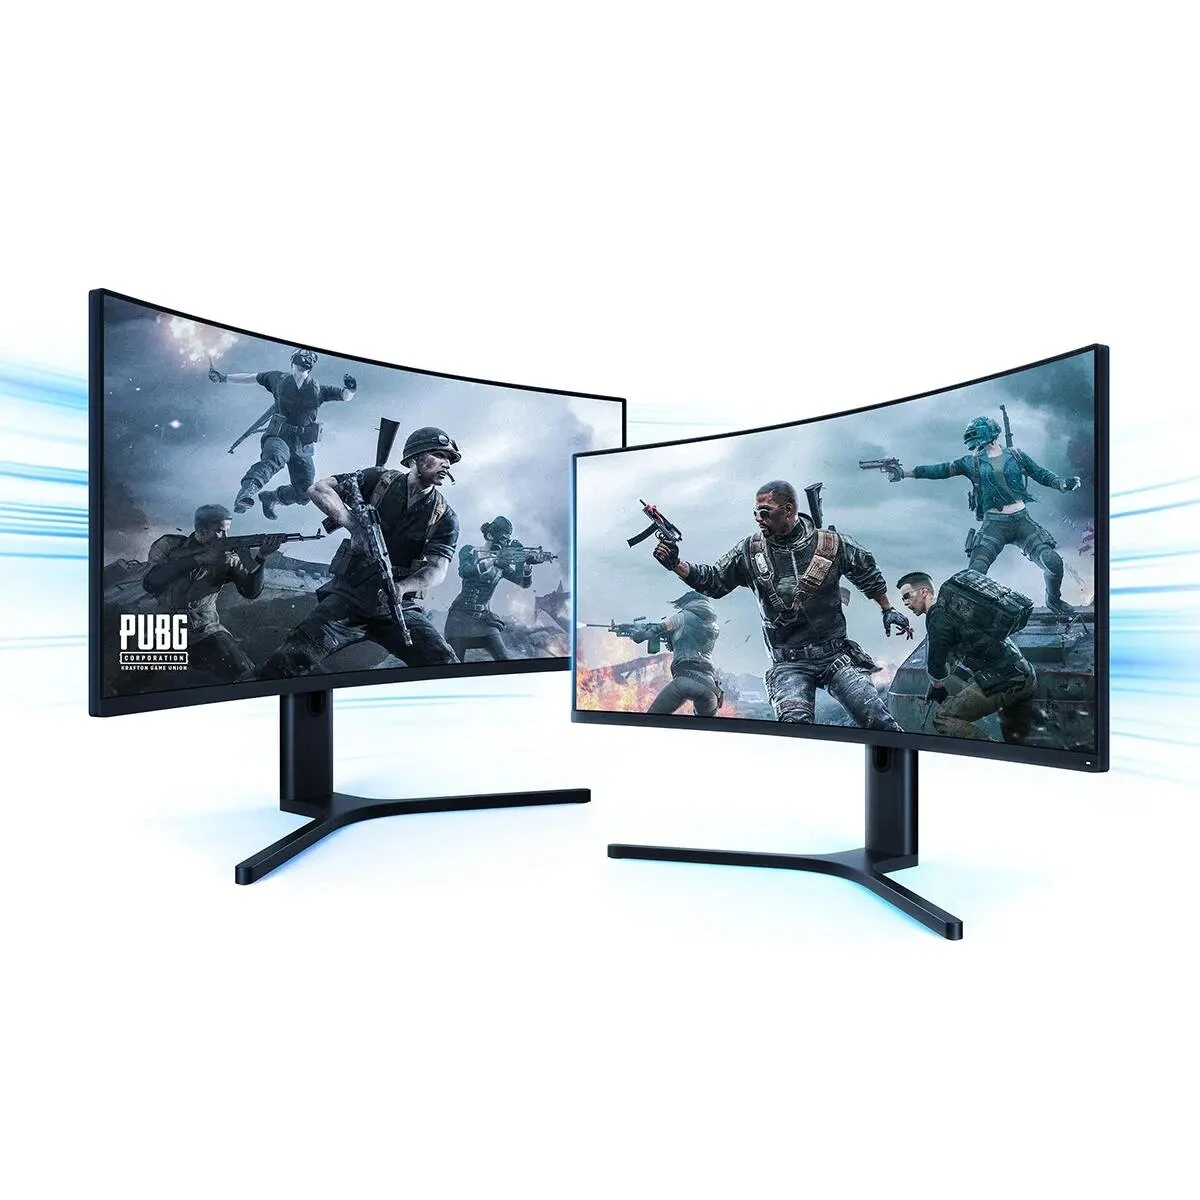 Mi Curved Gaming Monitor 34 inch